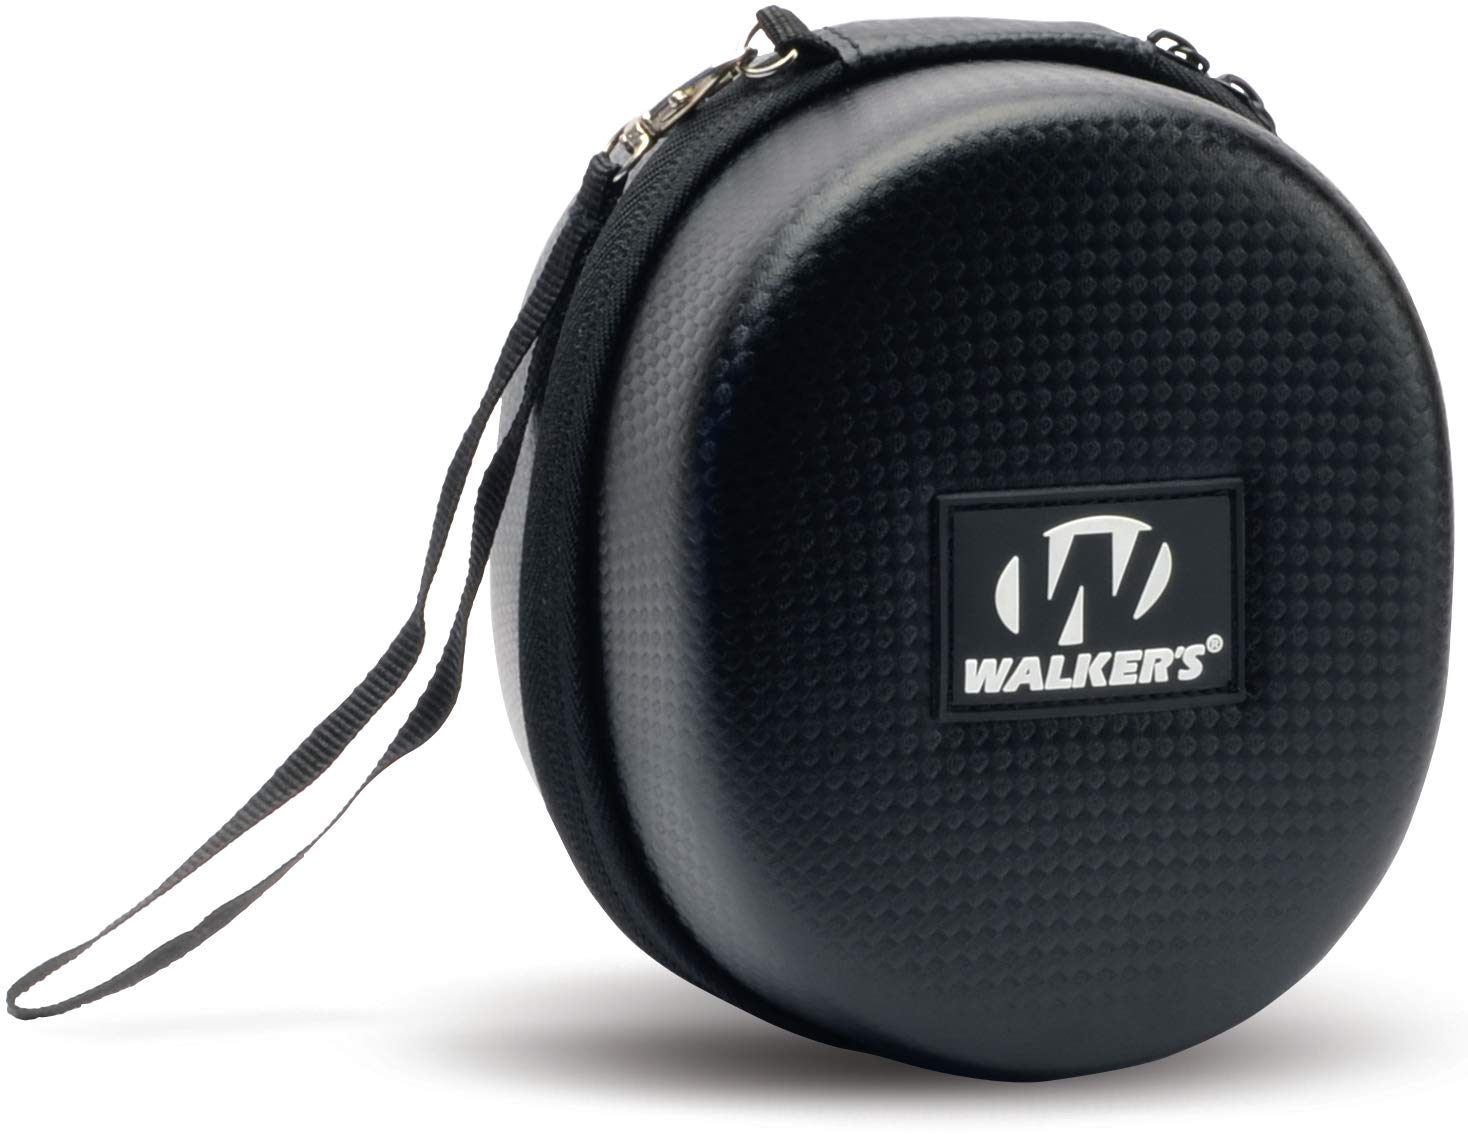 Walkers Razor Slim Electronic Shooting Hearing Protection Muff (Black) with Protective Case by Walkers (Image #5)